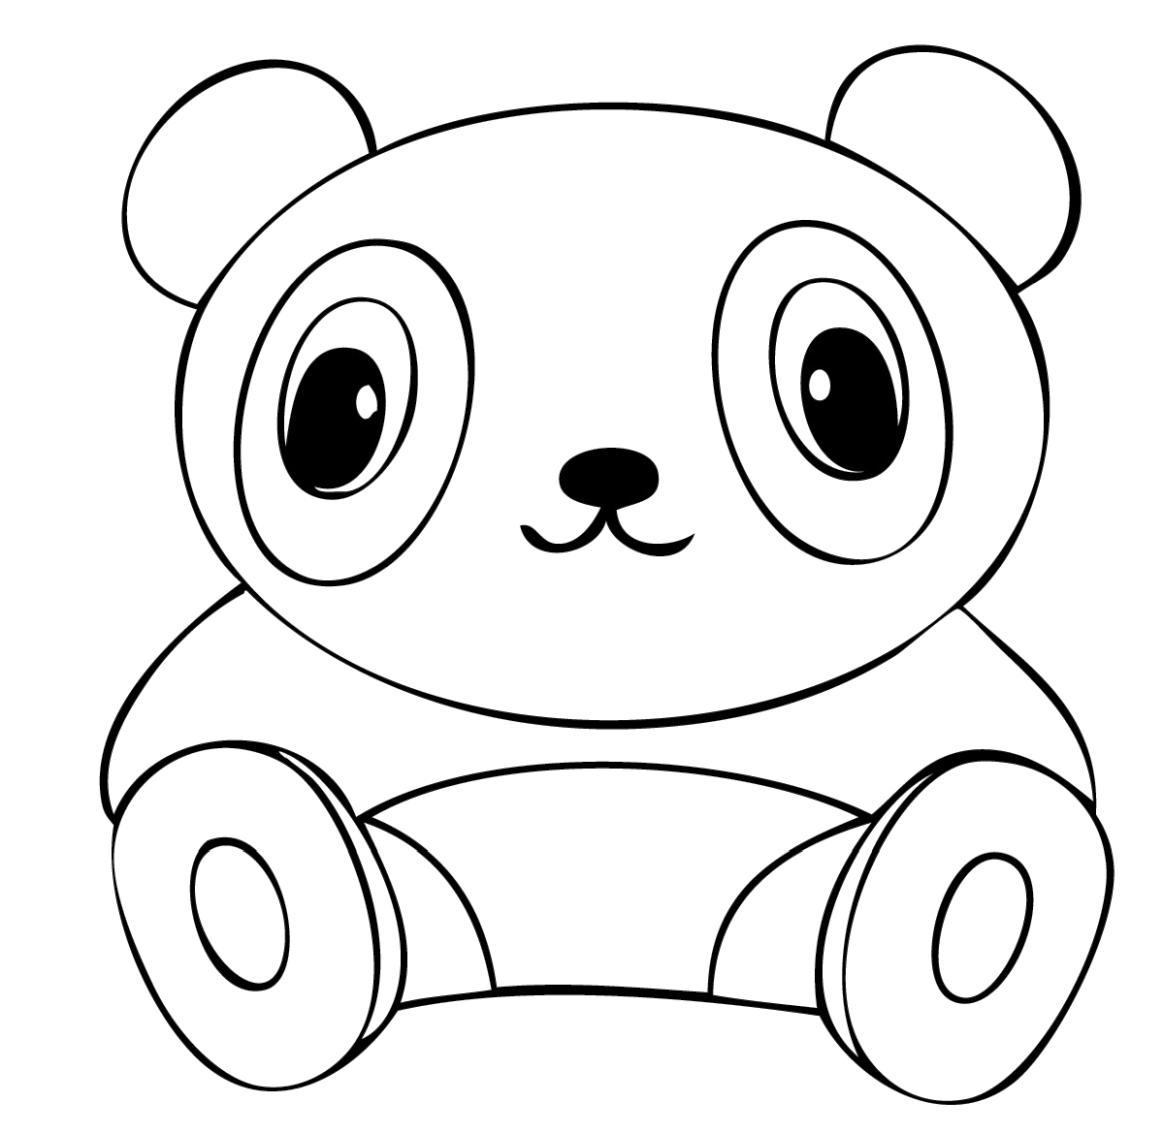 Cute Panda Stuffed Toy Coloring Pages